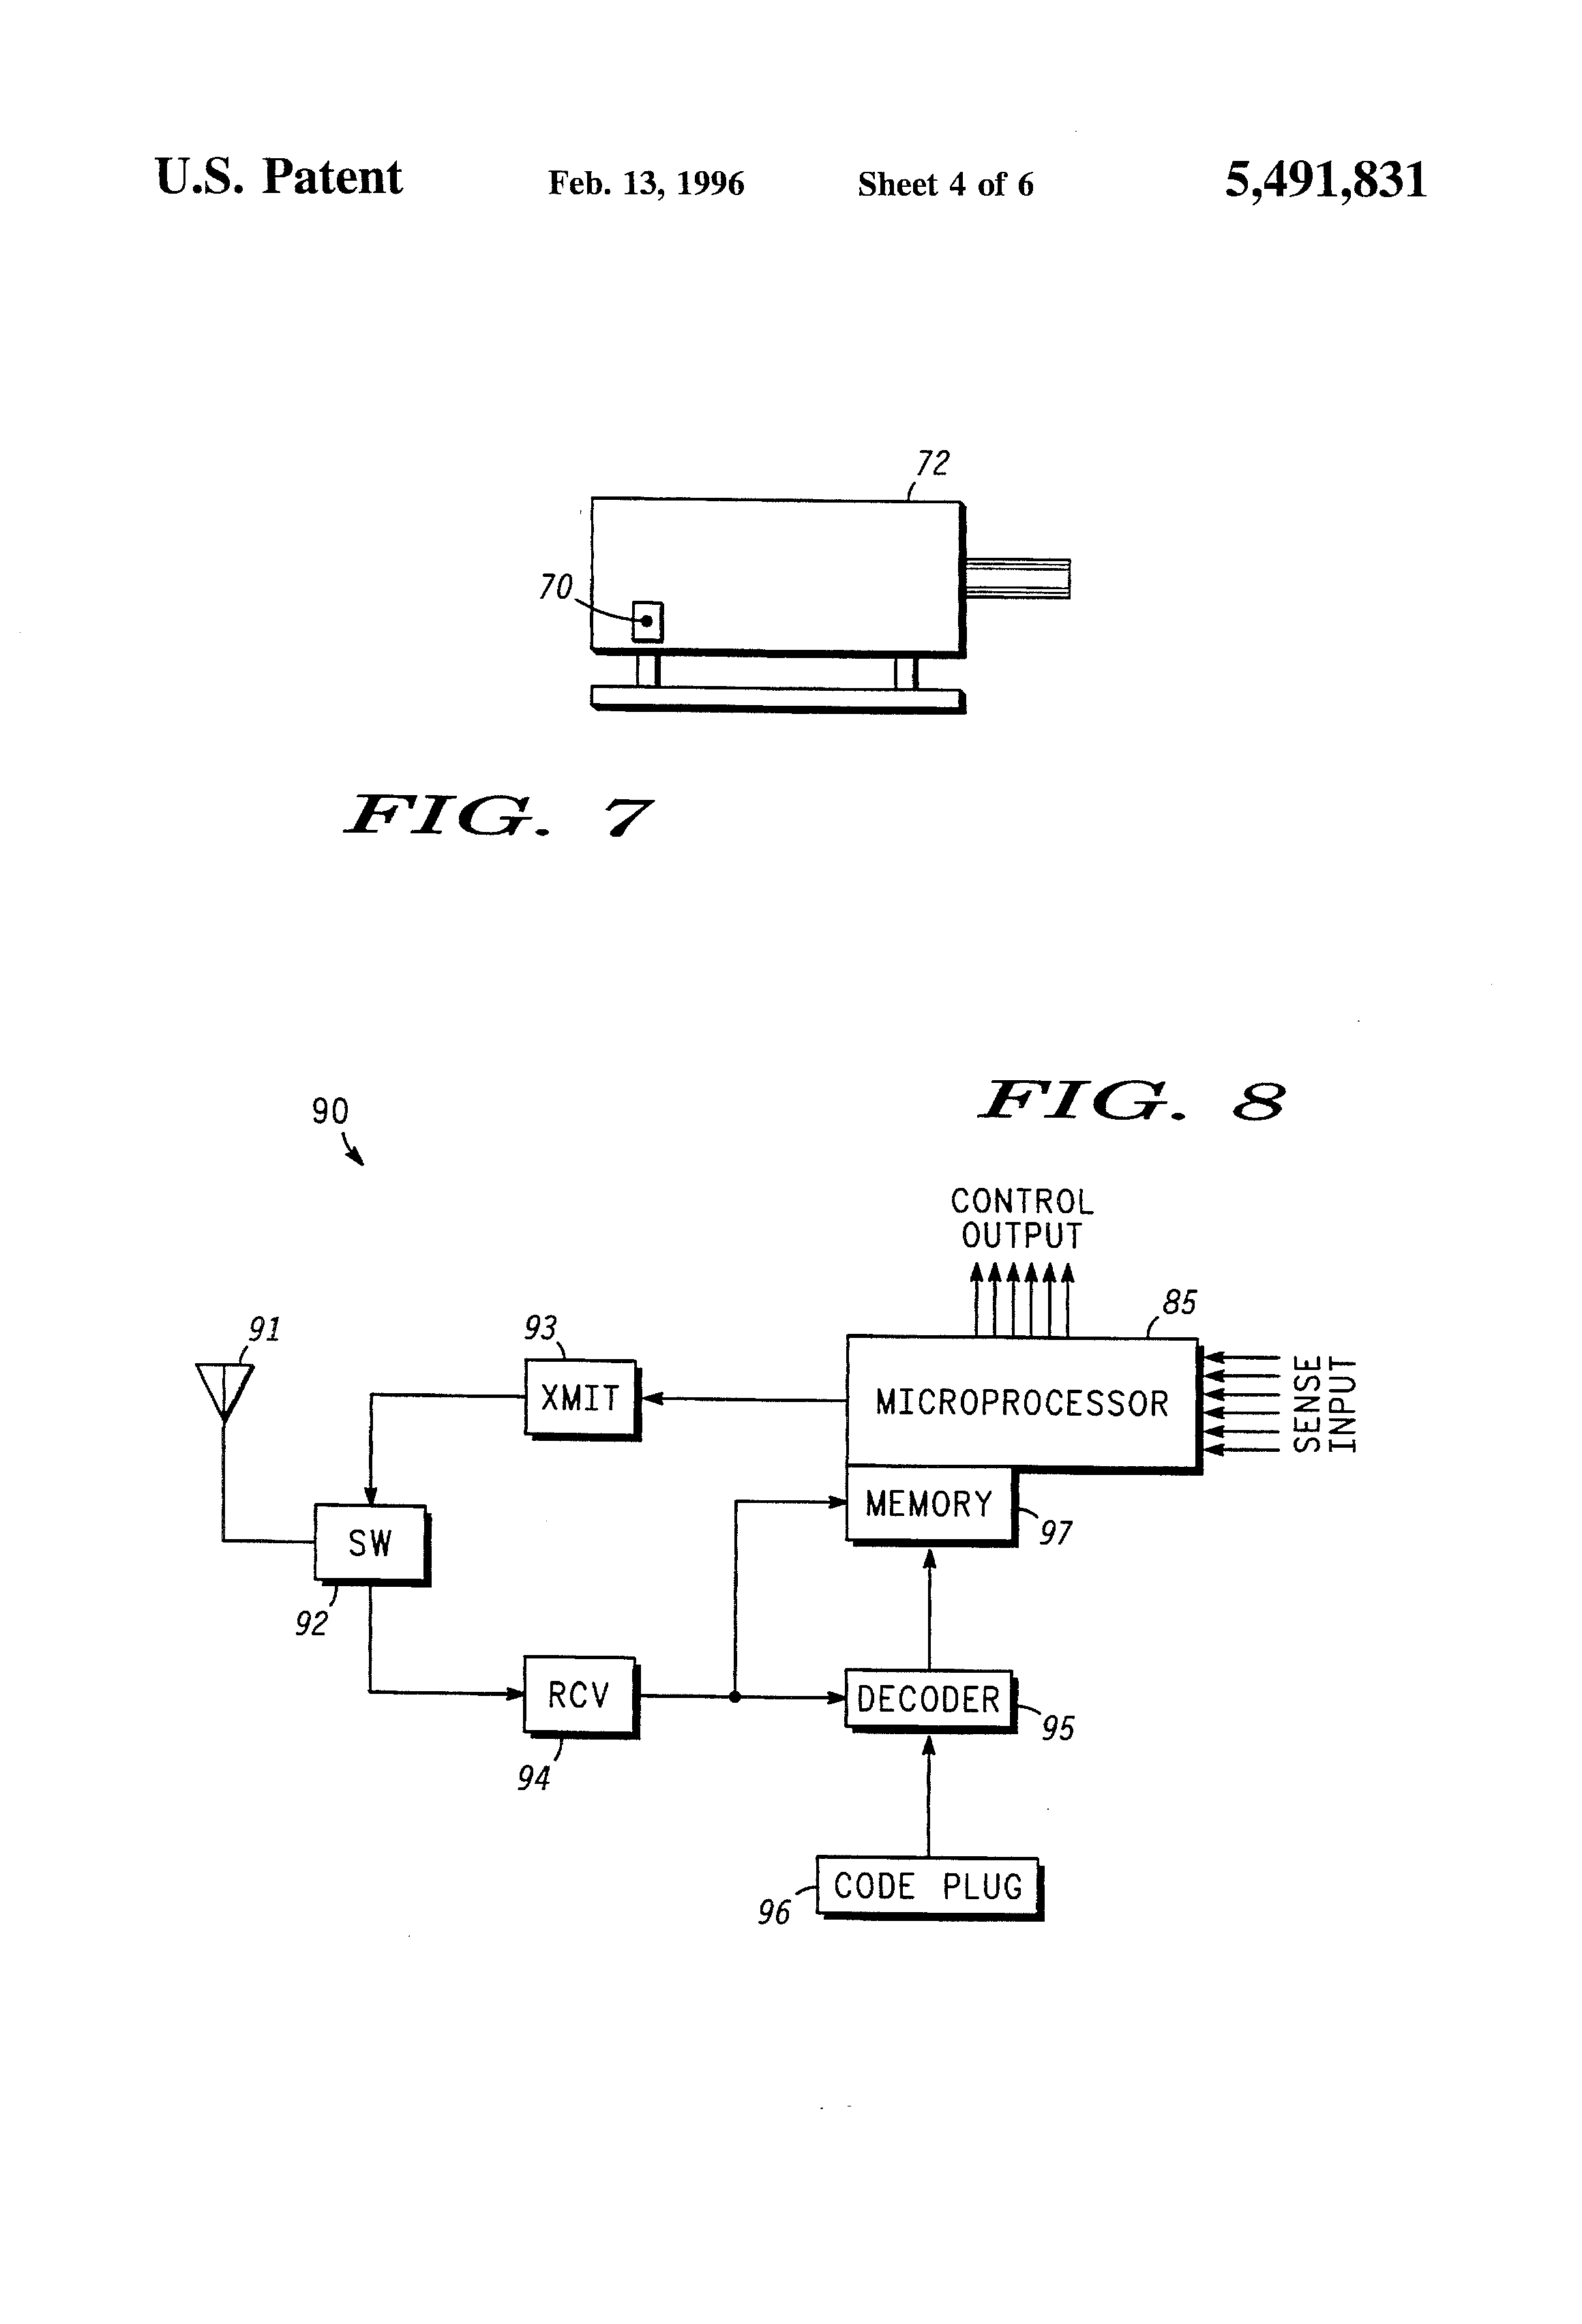 The Wiring Diagram In Figure 549 Shows A Typical Motor Circuit And on 3 phase motor winding diagrams, single phase capacitor motor diagrams, typical motor cooling system, typical thermostat wiring diagram, typical motor starter diagram, capacitor start motor diagrams,